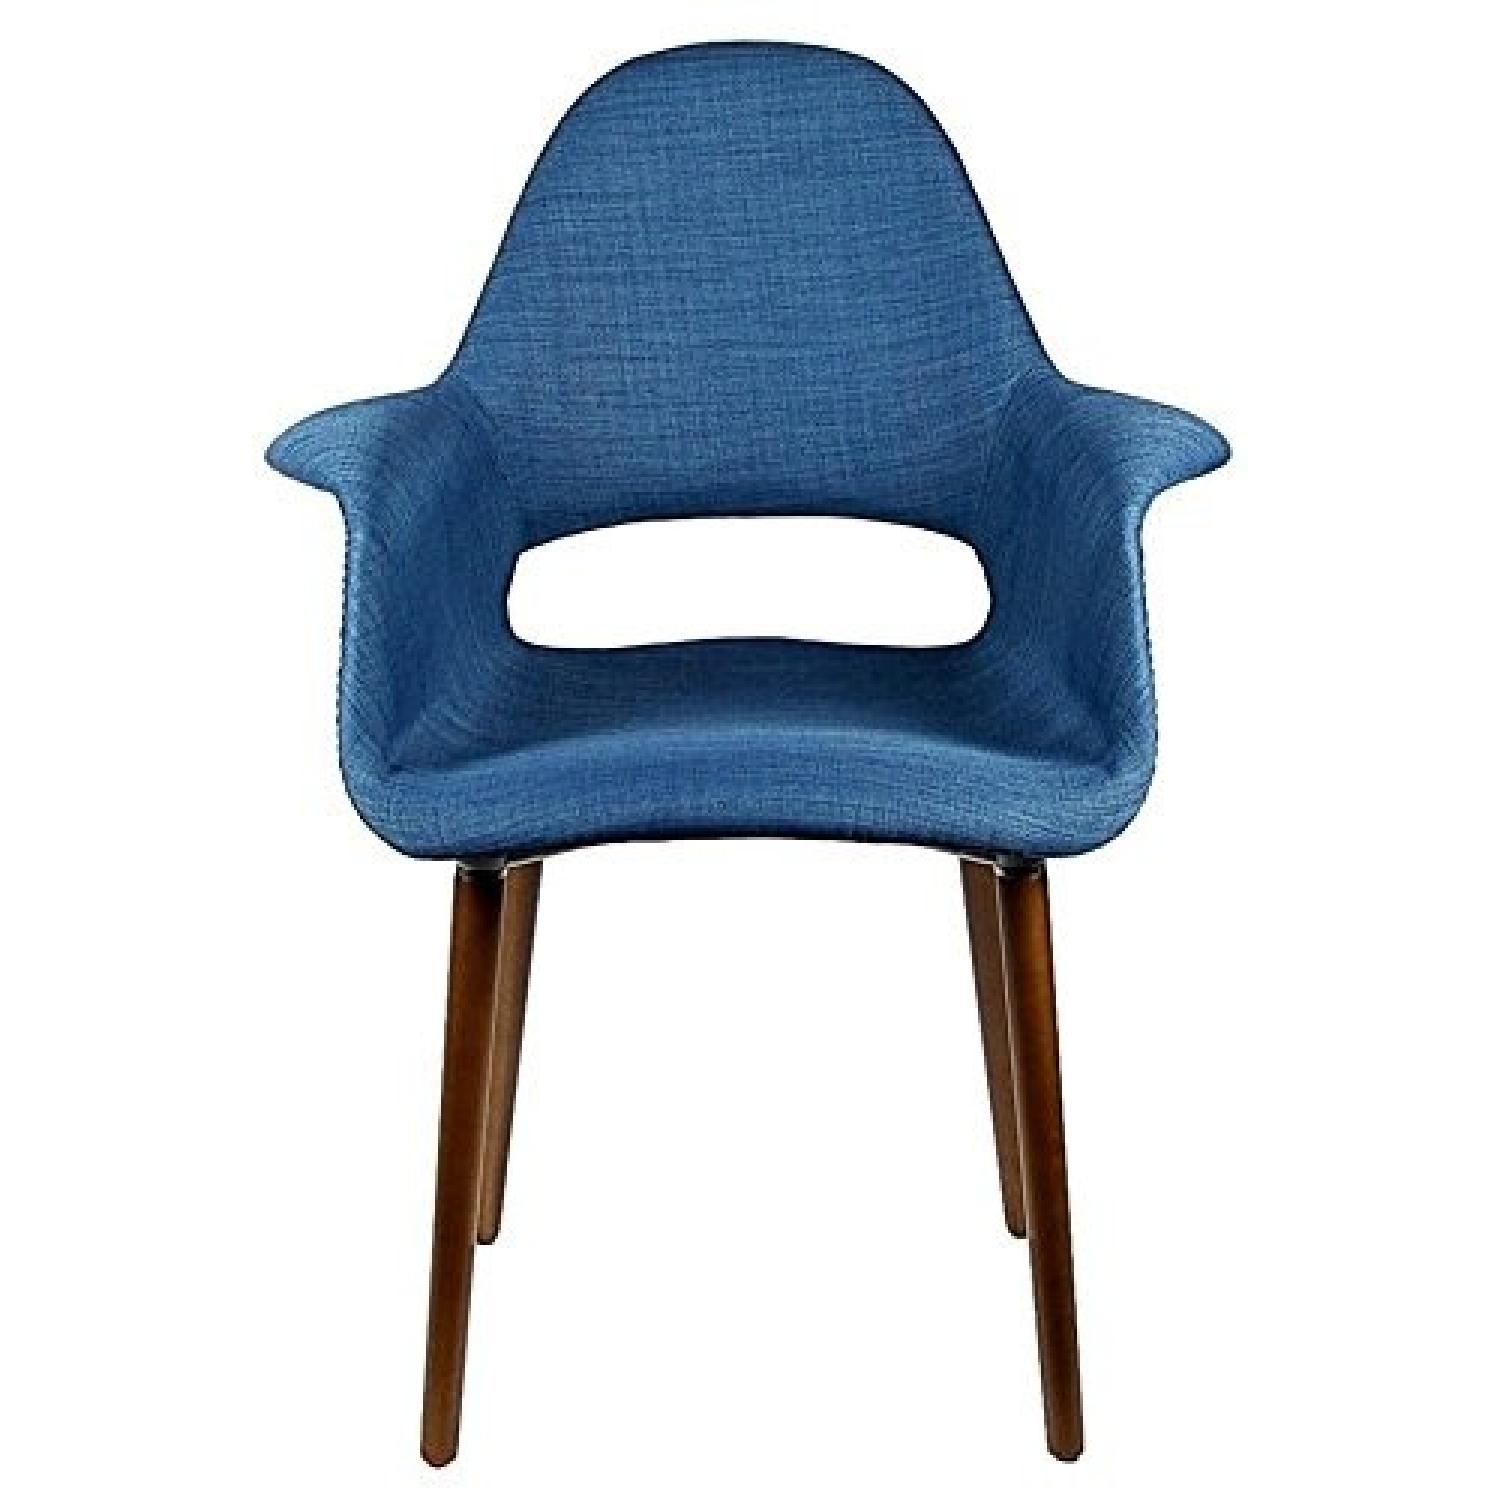 Laura Davidson Tribeca Organic Arm Chairs In Blue Fabric ...